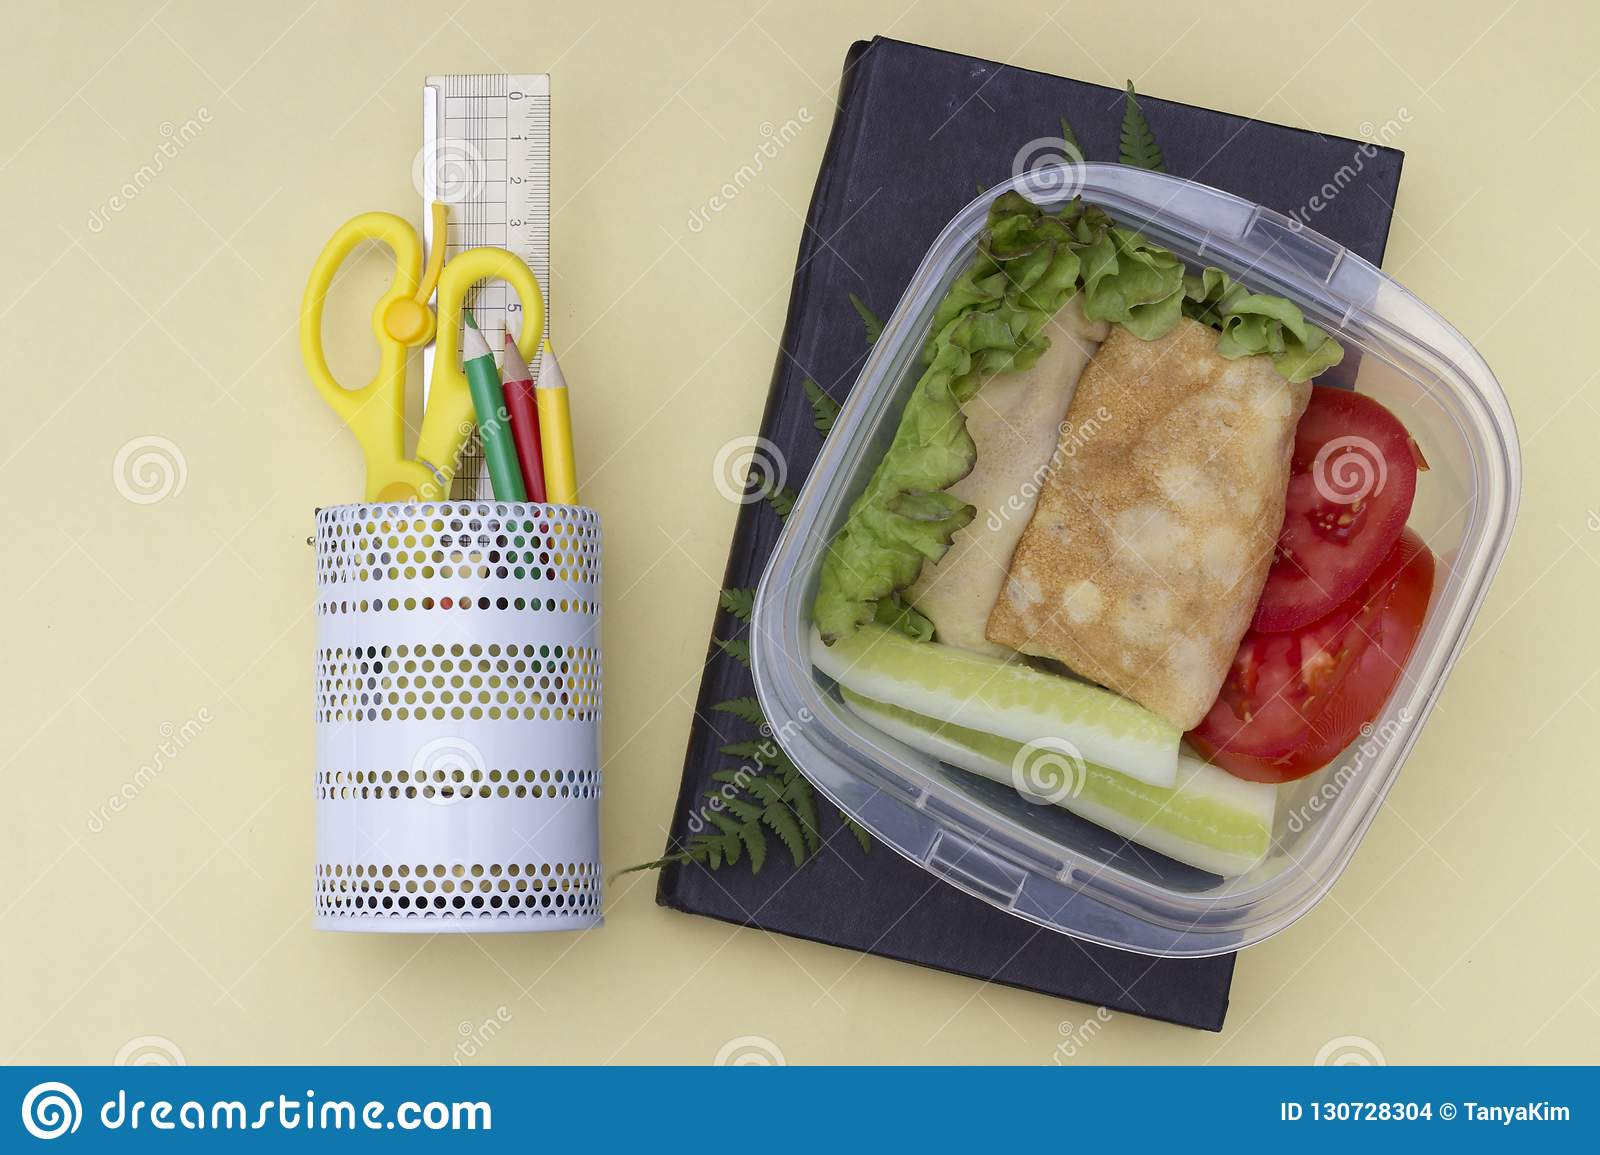 Sandwich with vegetables in a container, school lunch, multicolored pencils and book on a yellow background, top view